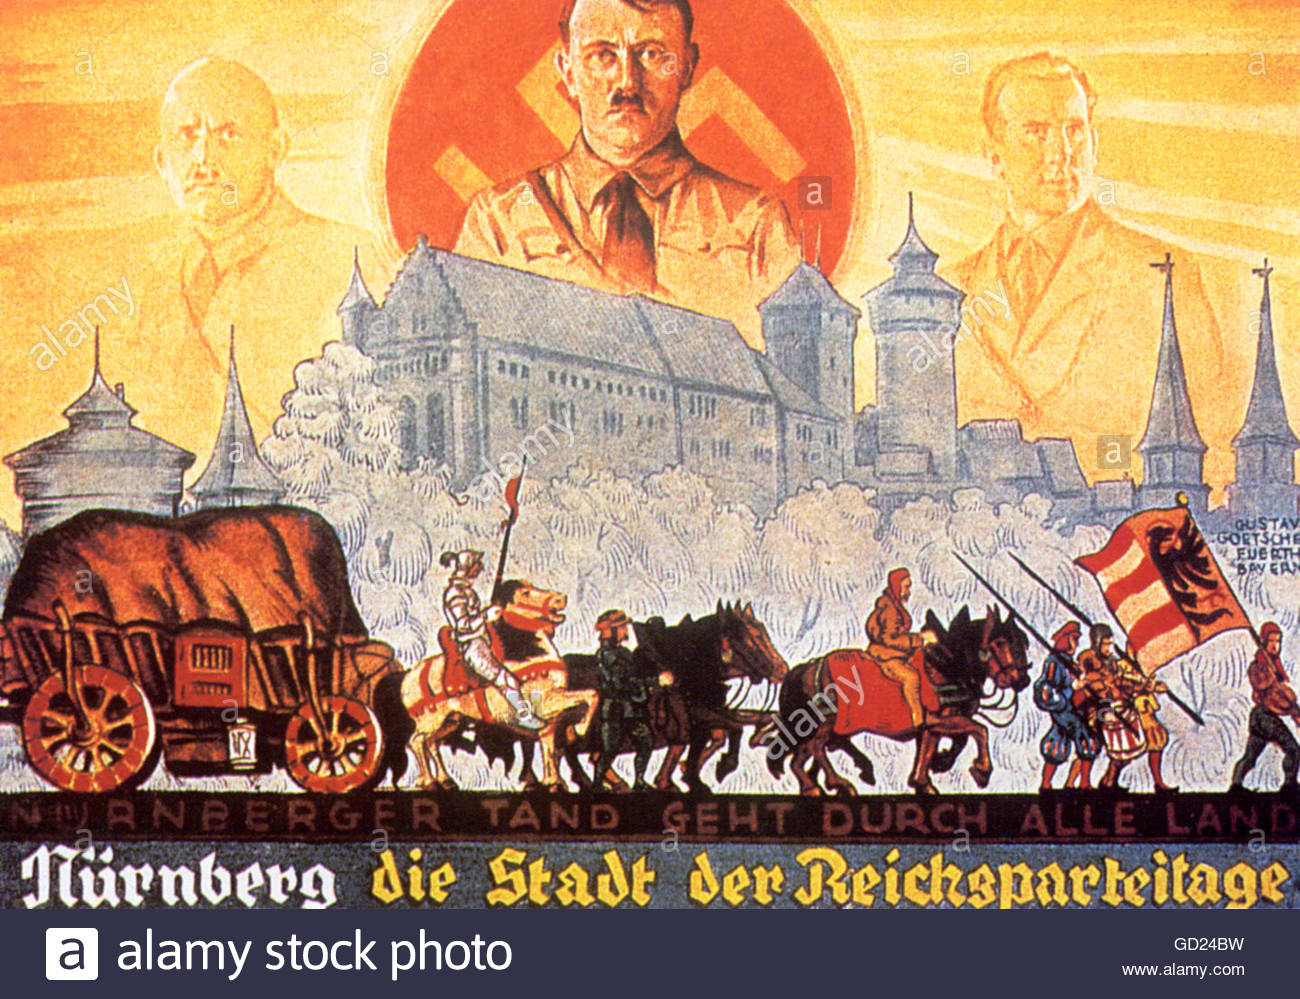 Nazism / National Socialism, propaganda, 'Nuremberg, the city of the Reich's Party Days', poster, September - Stock Image